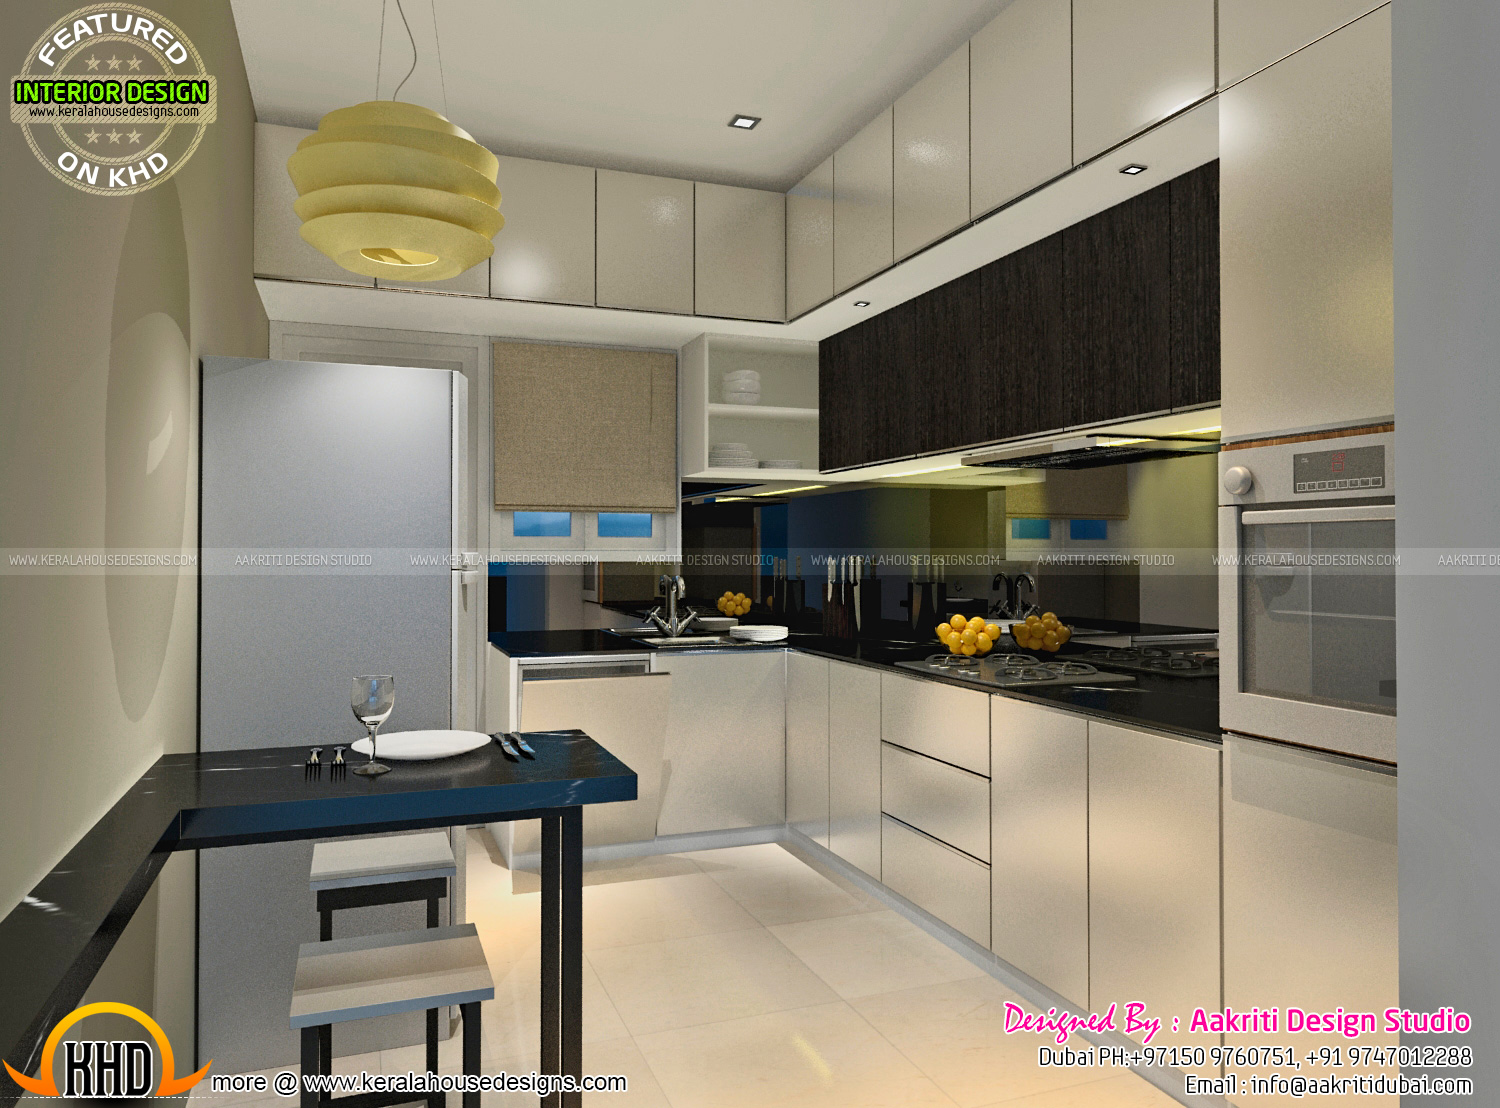 Dining kitchen wash area interior kerala home design for Interior design ideas for kitchen